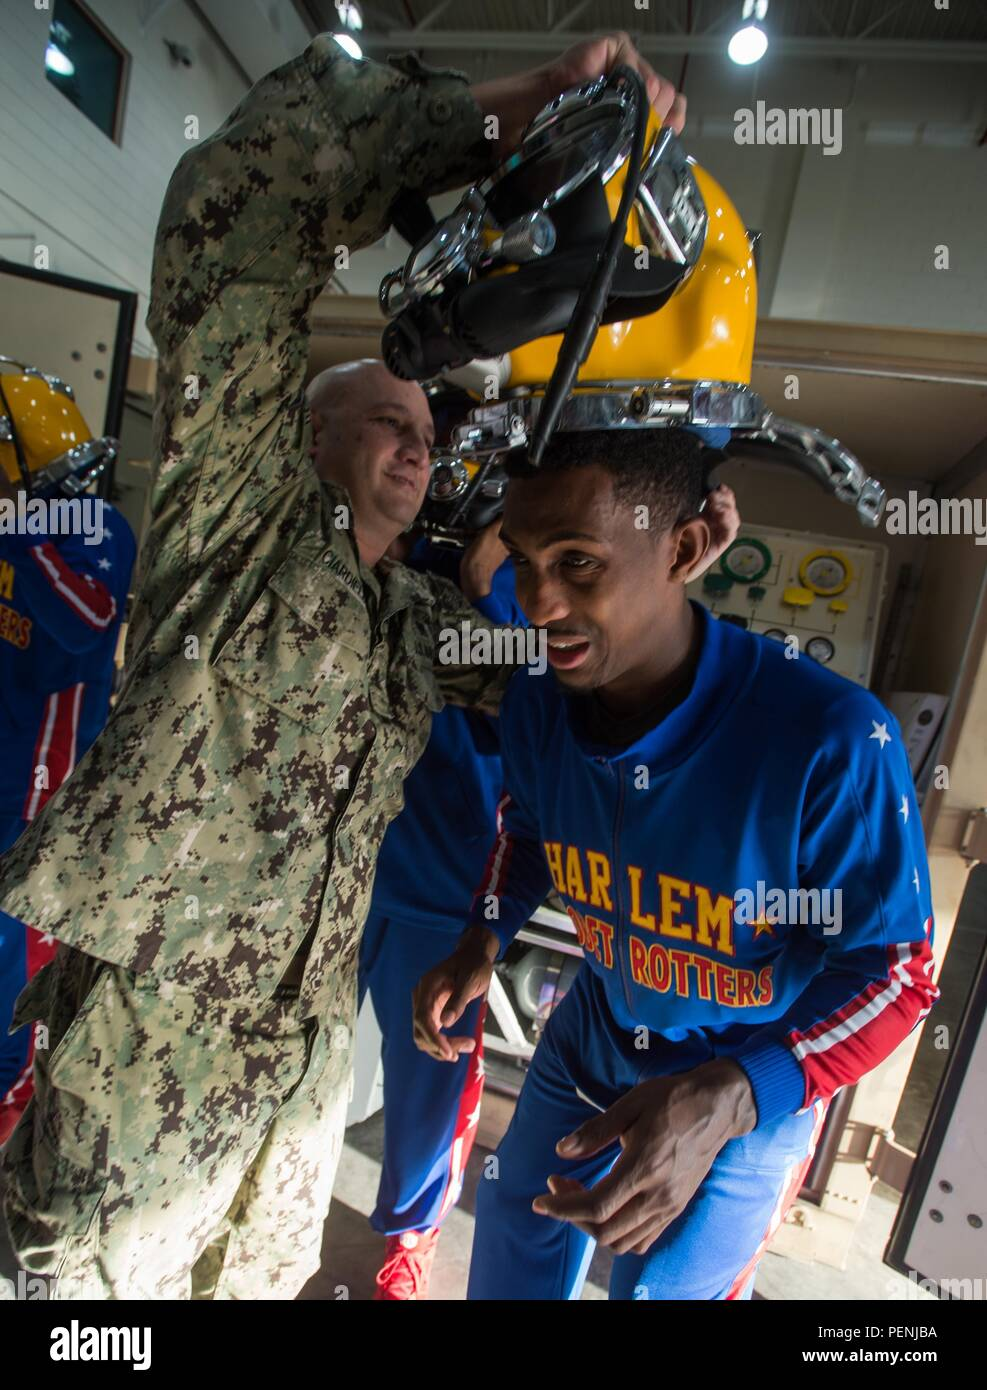 151213-N-CJ186-616 NAVAL SUPPORT ACTIVITY BAHRAIN (Dec. 13, 2015) Senior Chief Navy Diver Russell Ciardiello, assigned to Commander, Task Group 56.1, assists Harlem Globetrotter, Bull Bullard, to don a Kirby Morgan diving helmet during a command tour. The Harlem Globetrotters took an afternoon to meet service members stationed in the Kingdom of Bahrain during their 2016 World Tour, presented by Navy Entertainment and Armed Forces Entertainment. CTG 56.1 conducts mine countermeasure, explosive ordnance disposal, salvage-diving, and force protection operations throughout the 5th Fleet area of op - Stock Image